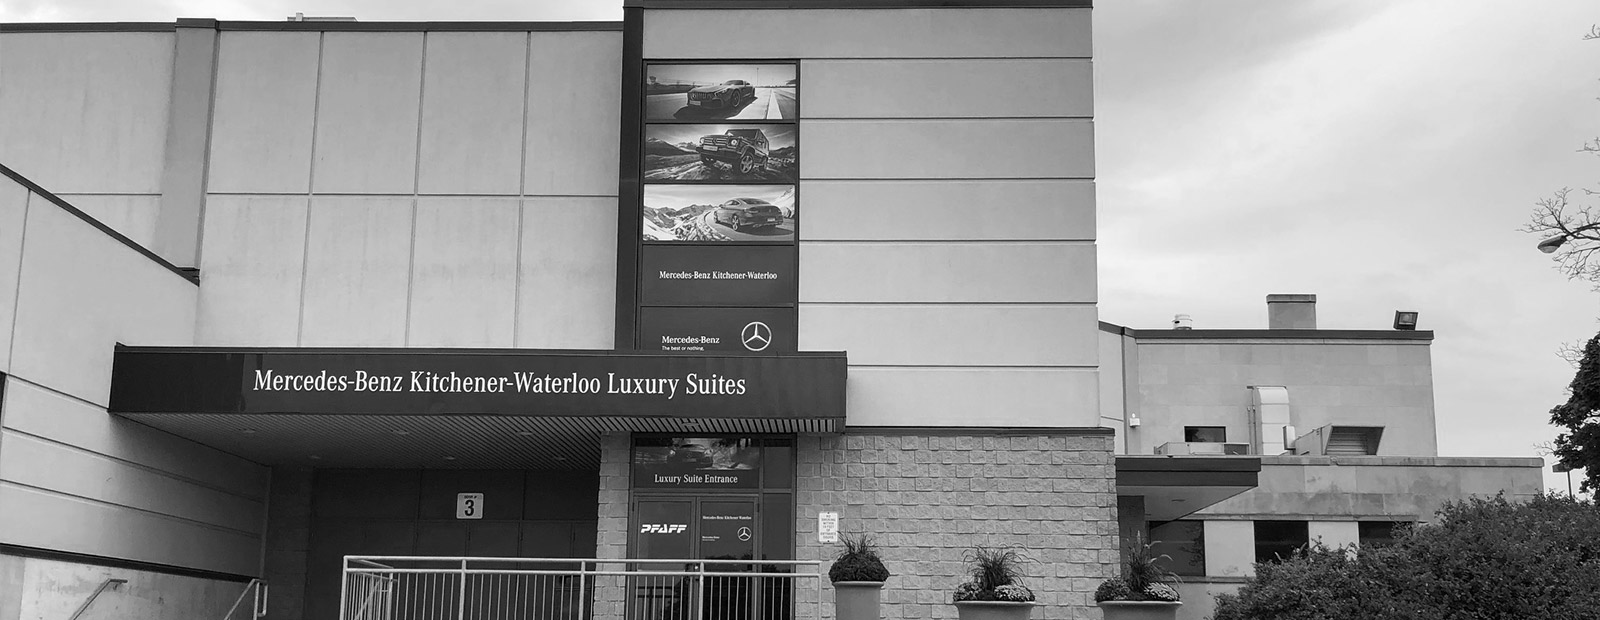 Mercedes-Benz Kitchener Waterloo Luxury Suites at The Aud